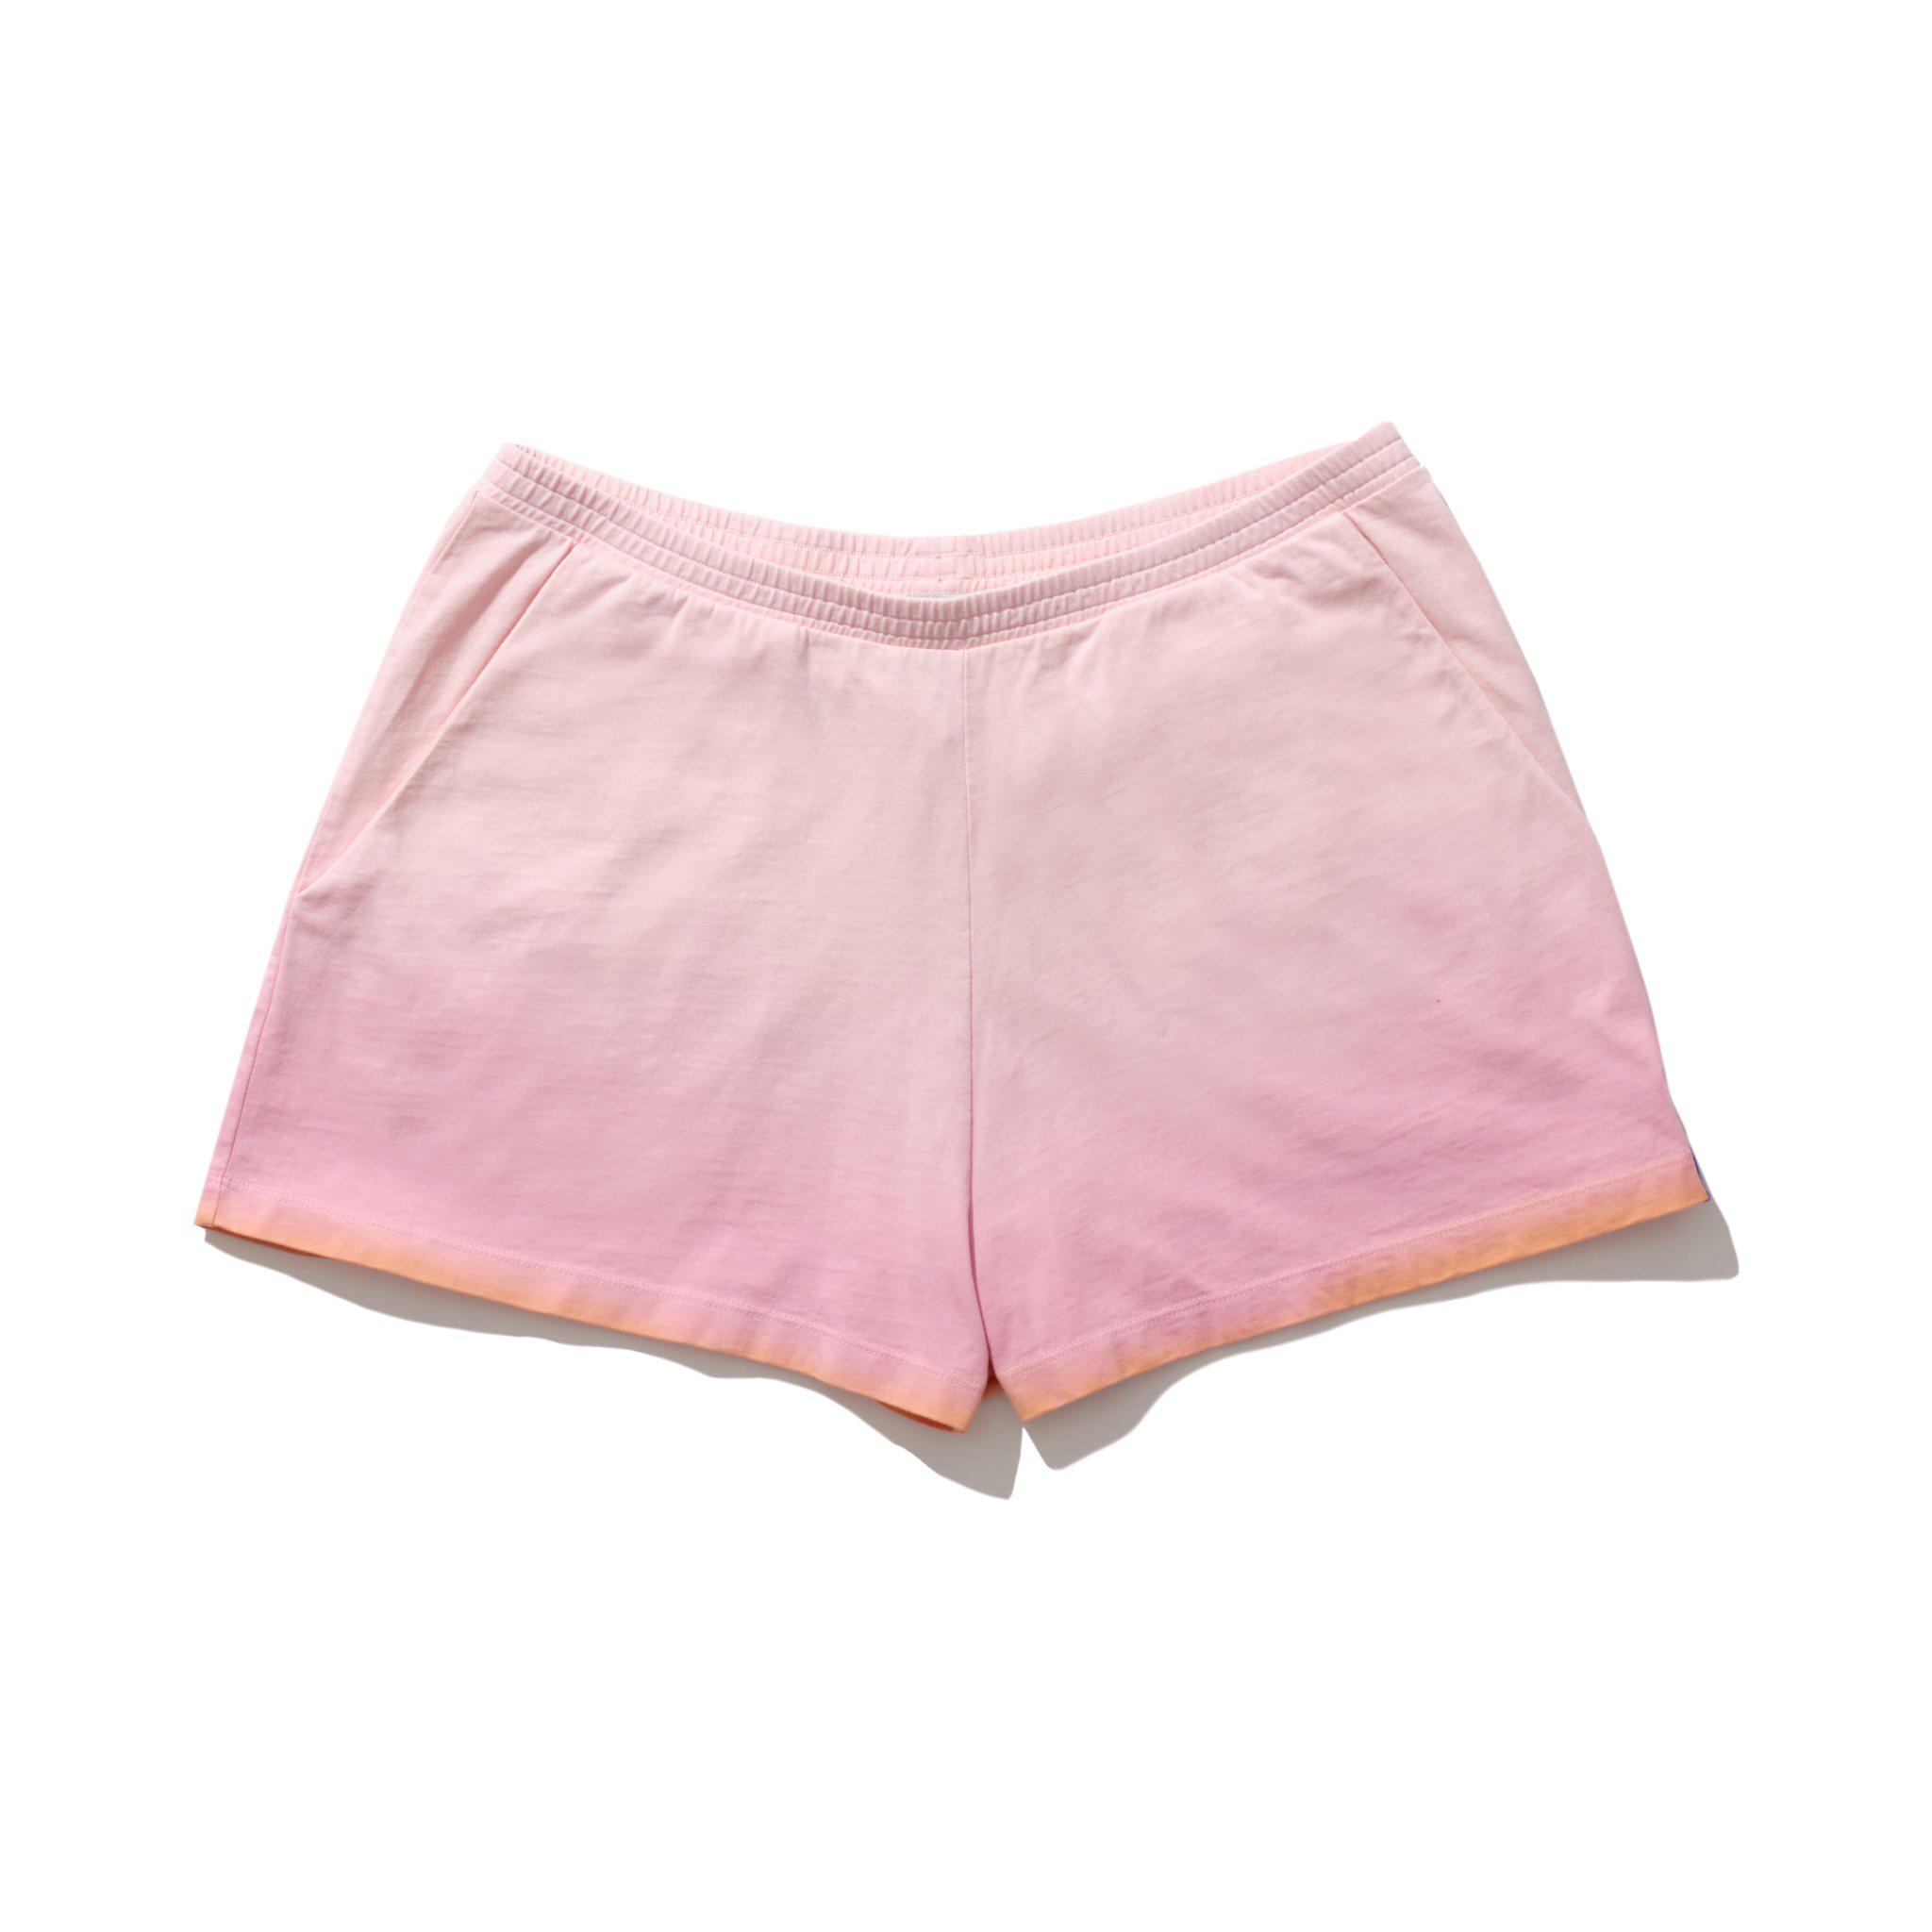 The Ombre Short - Pink/Gold